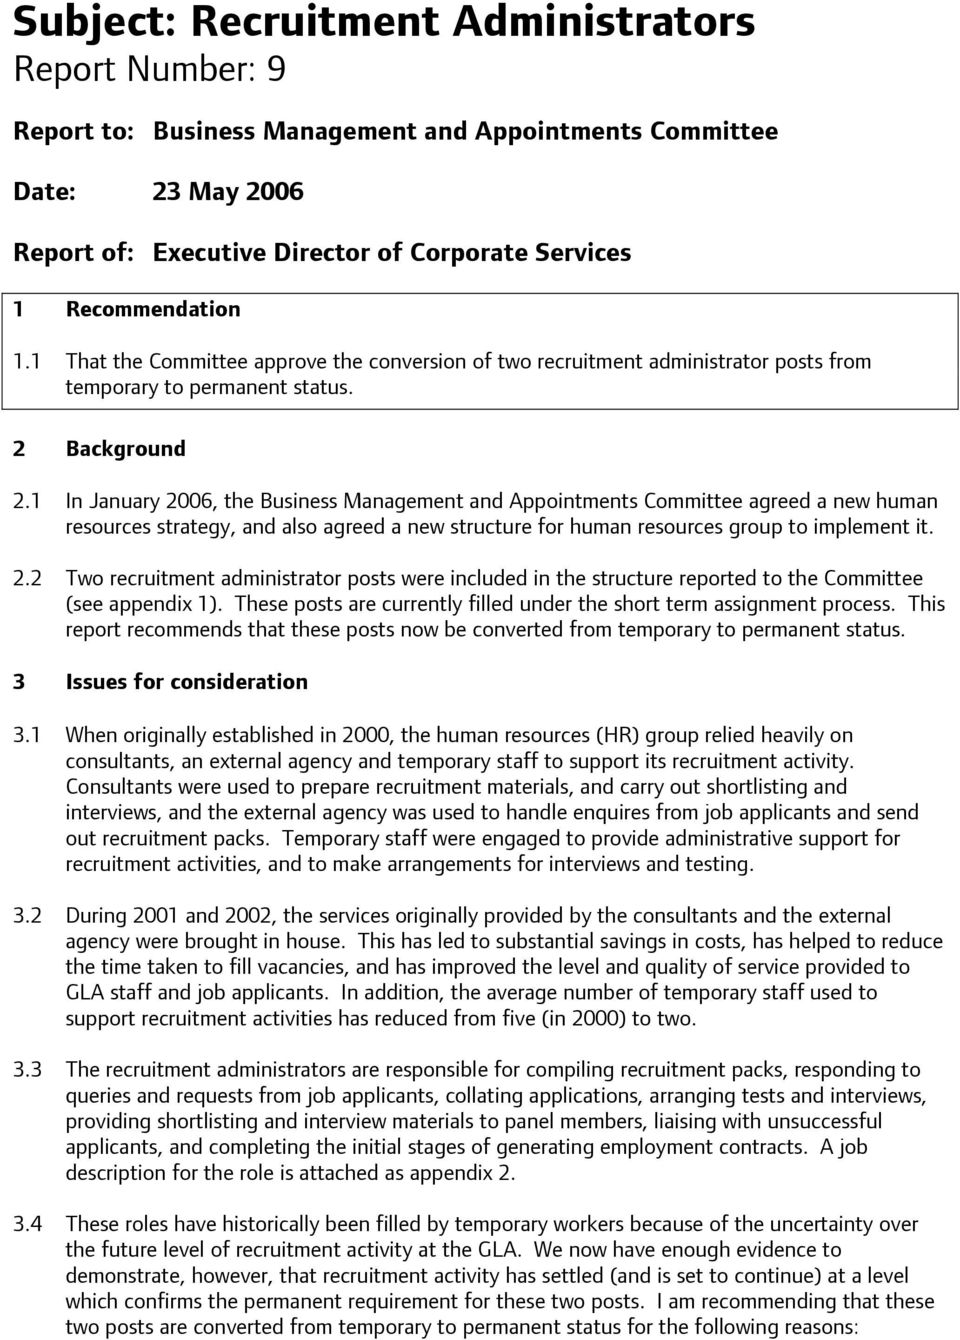 1 In January 2006, the Business Management and Appointments Committee agreed a new human resources strategy, and also agreed a new structure for human resources group to implement it. 2.2 Two recruitment administrator posts were included in the structure reported to the Committee (see appendix 1).